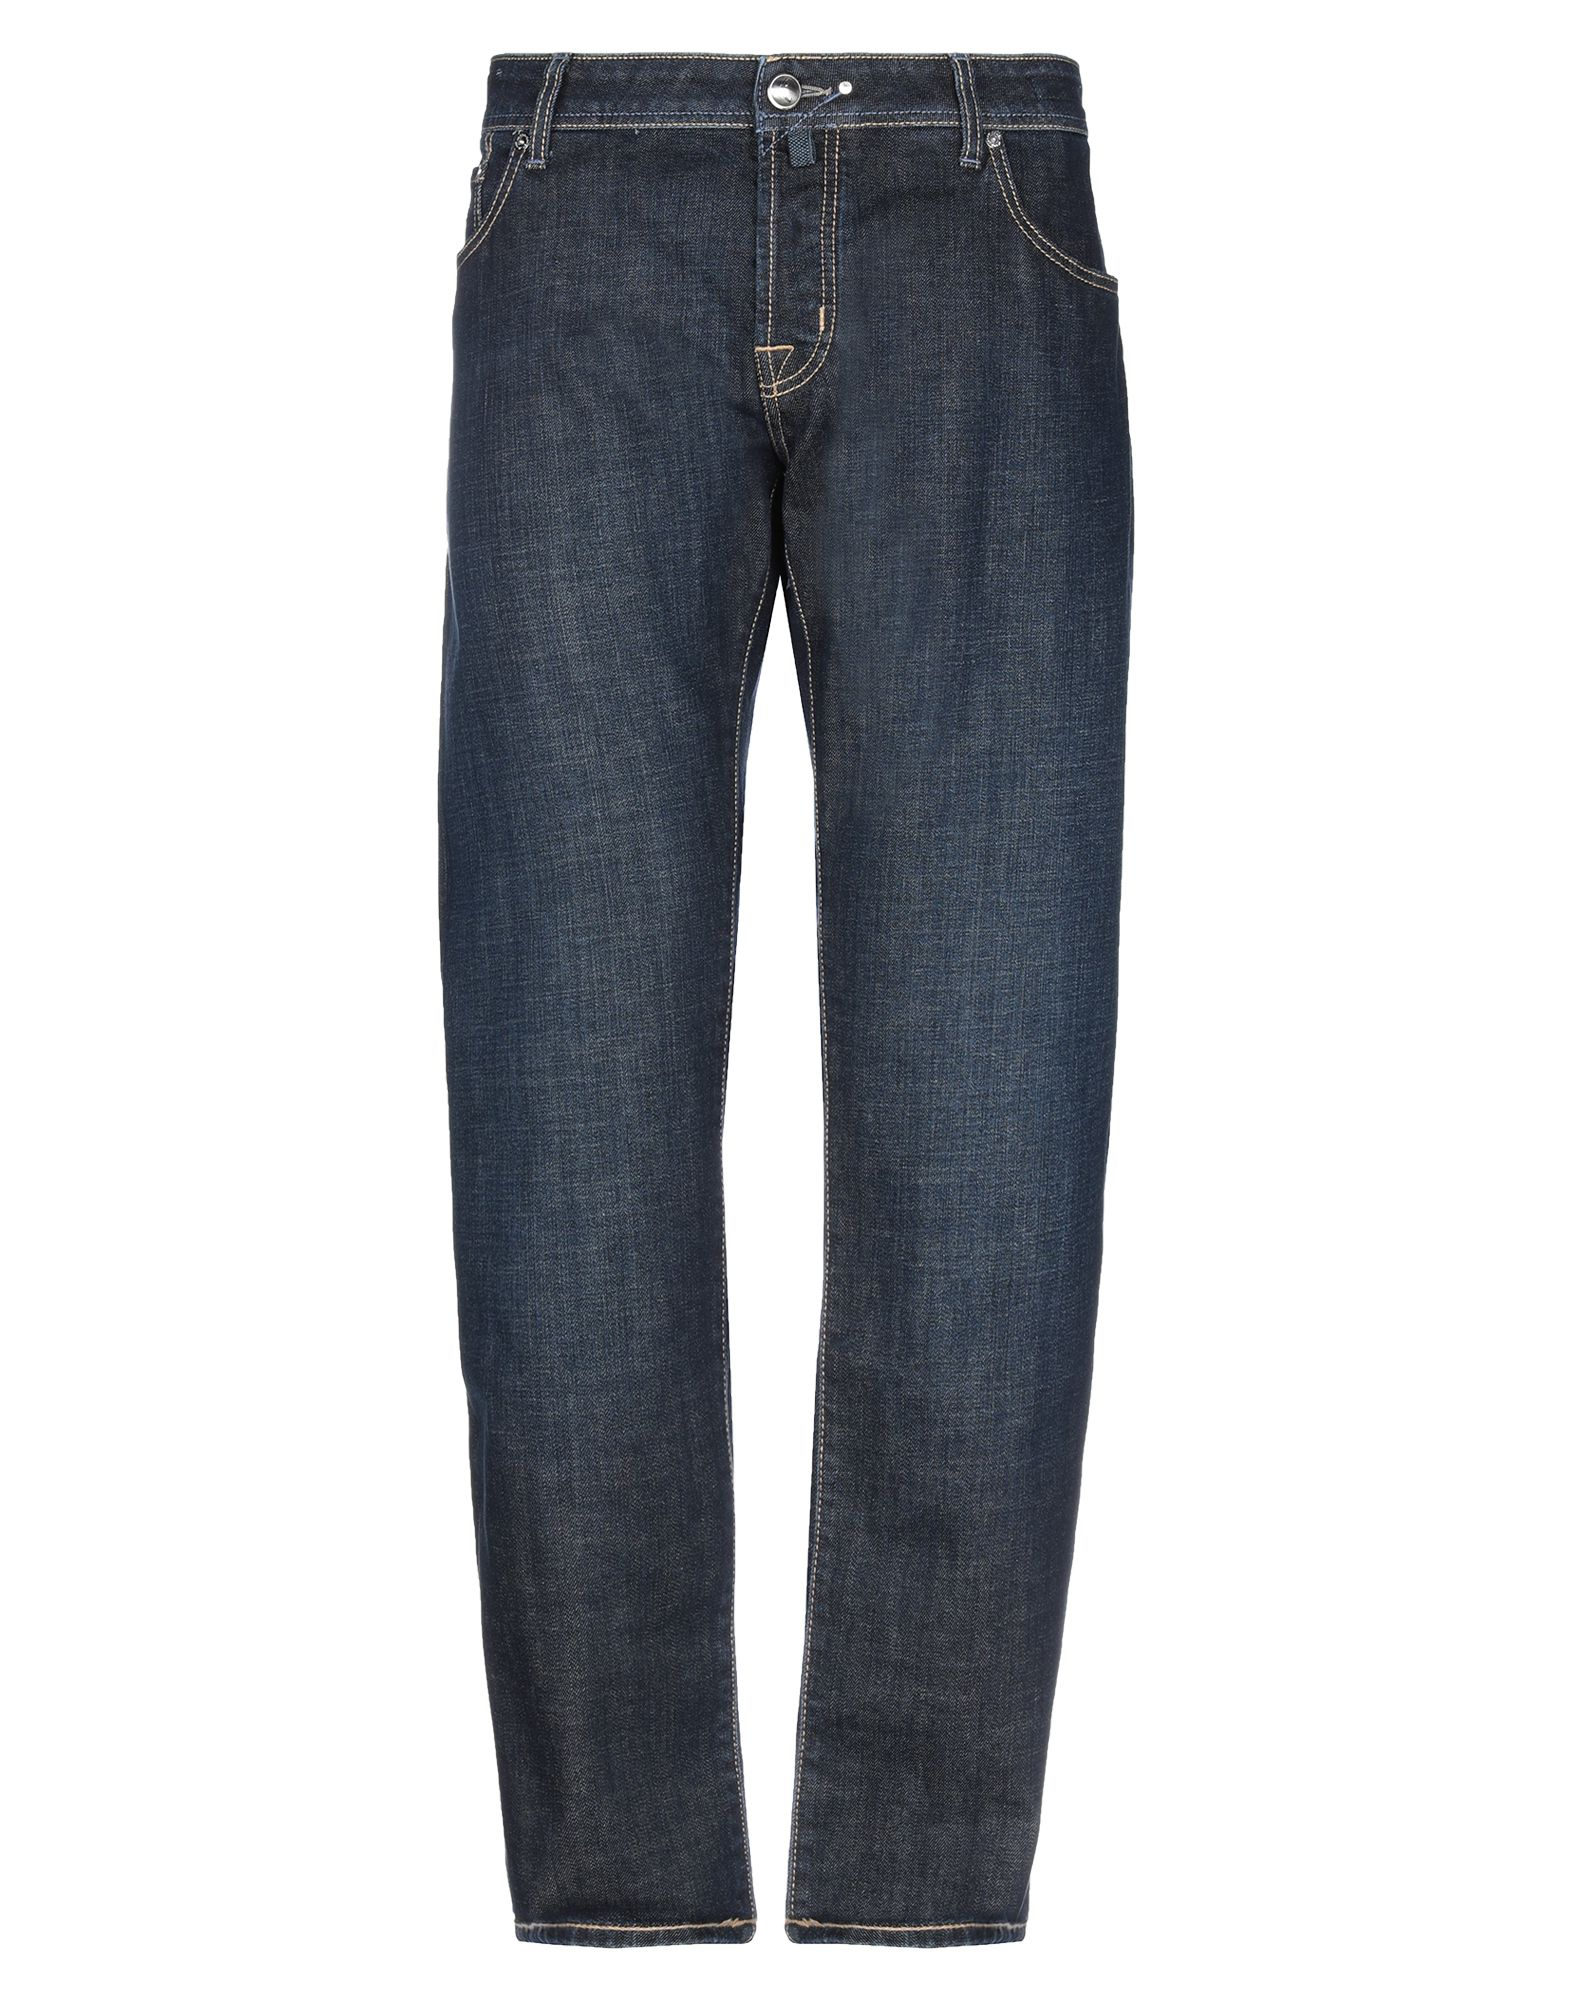 JACOB COHЁN Denim pants - Item 42810651